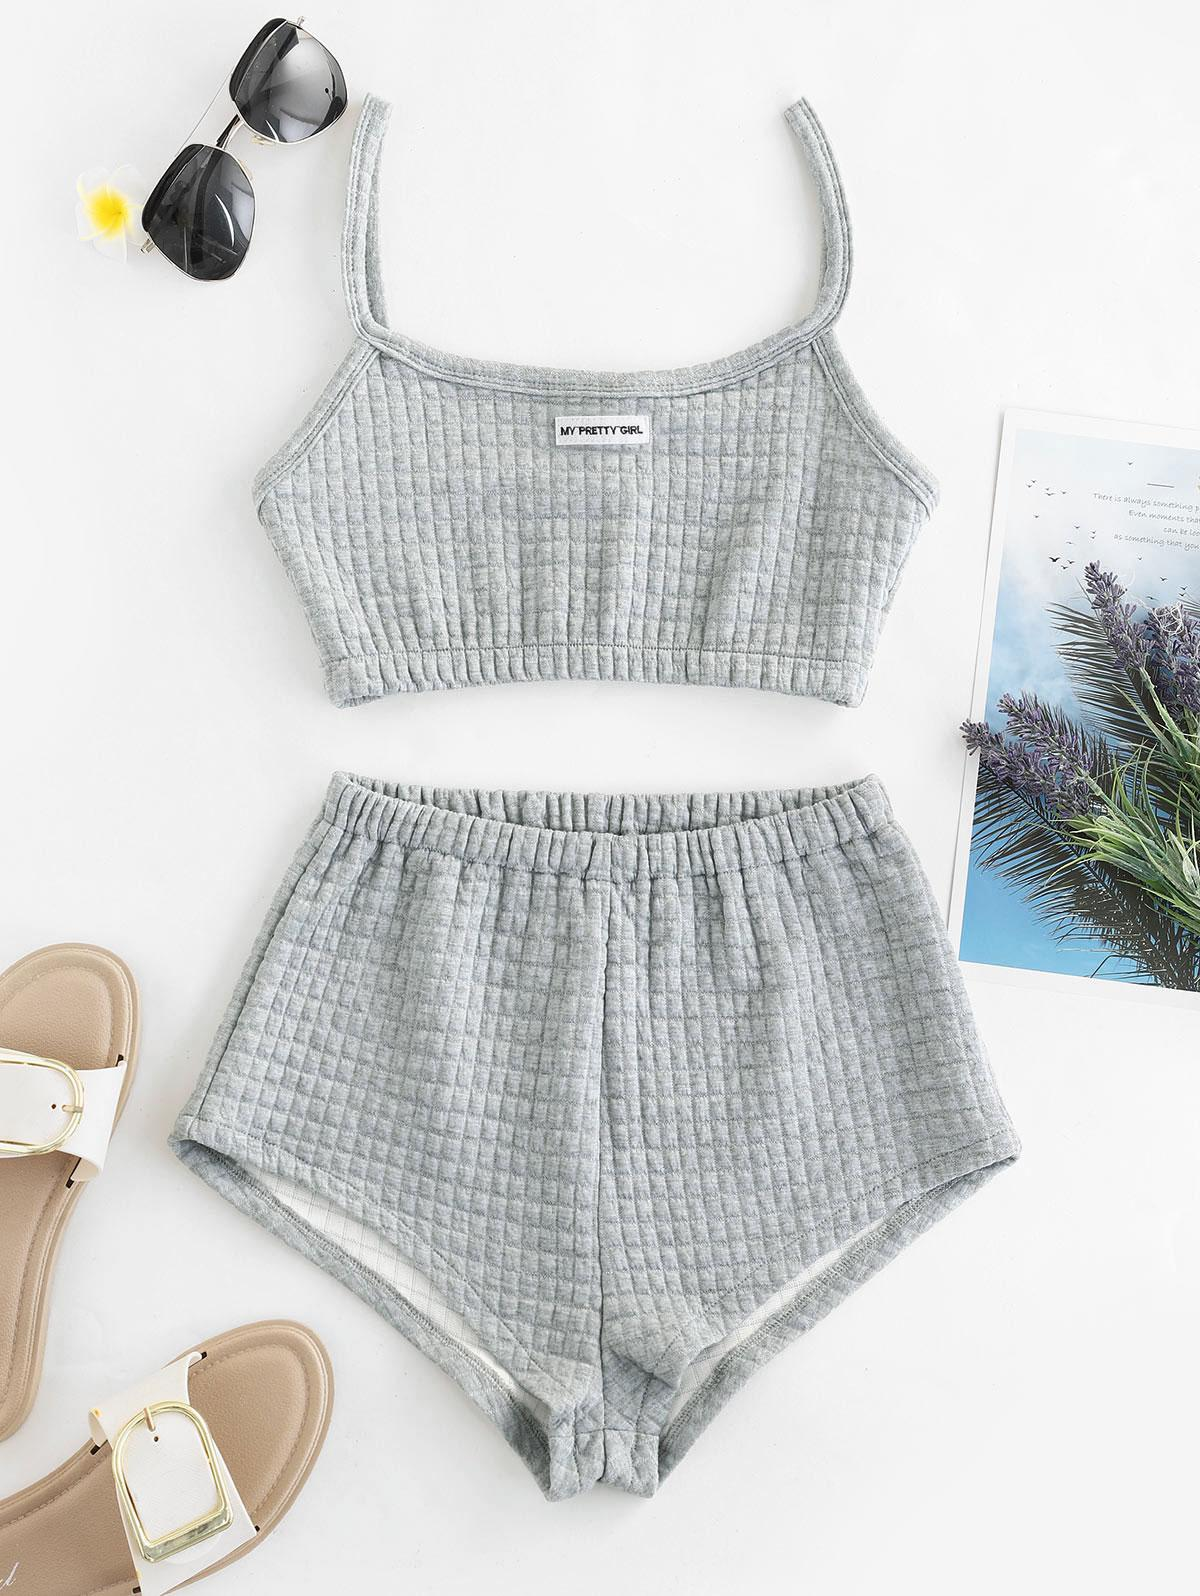 My Pretty Girl Patched Textured Square Two Piece Set фото